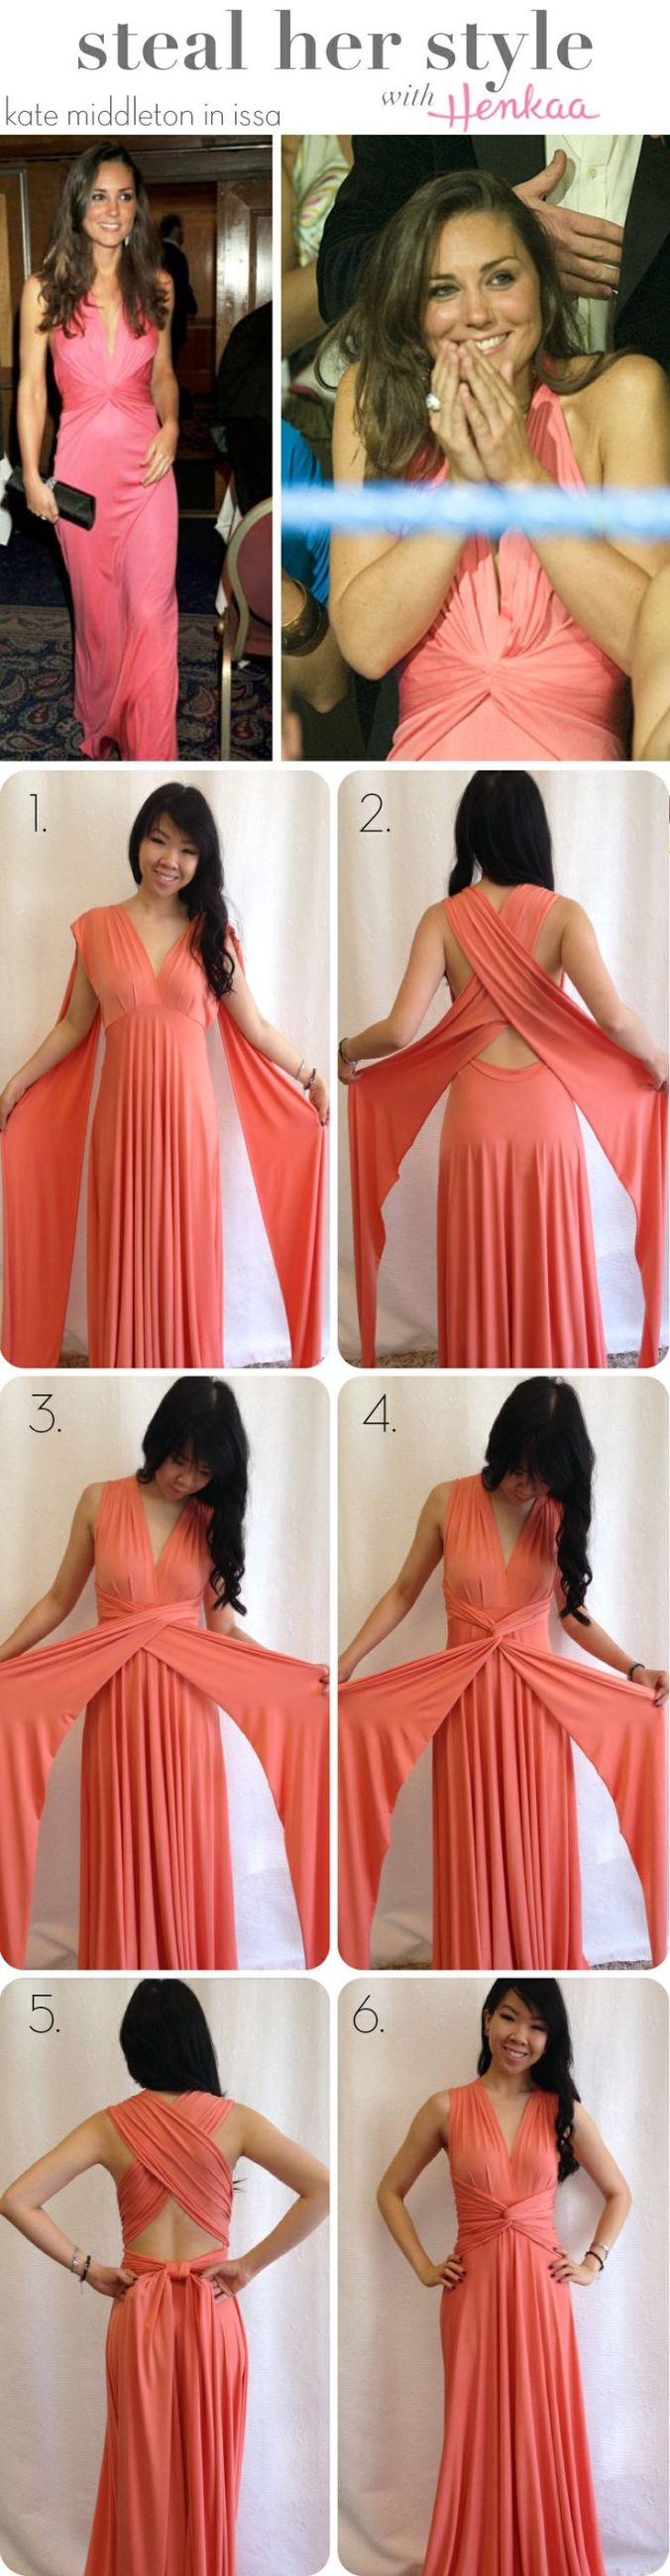 henka-dress-2